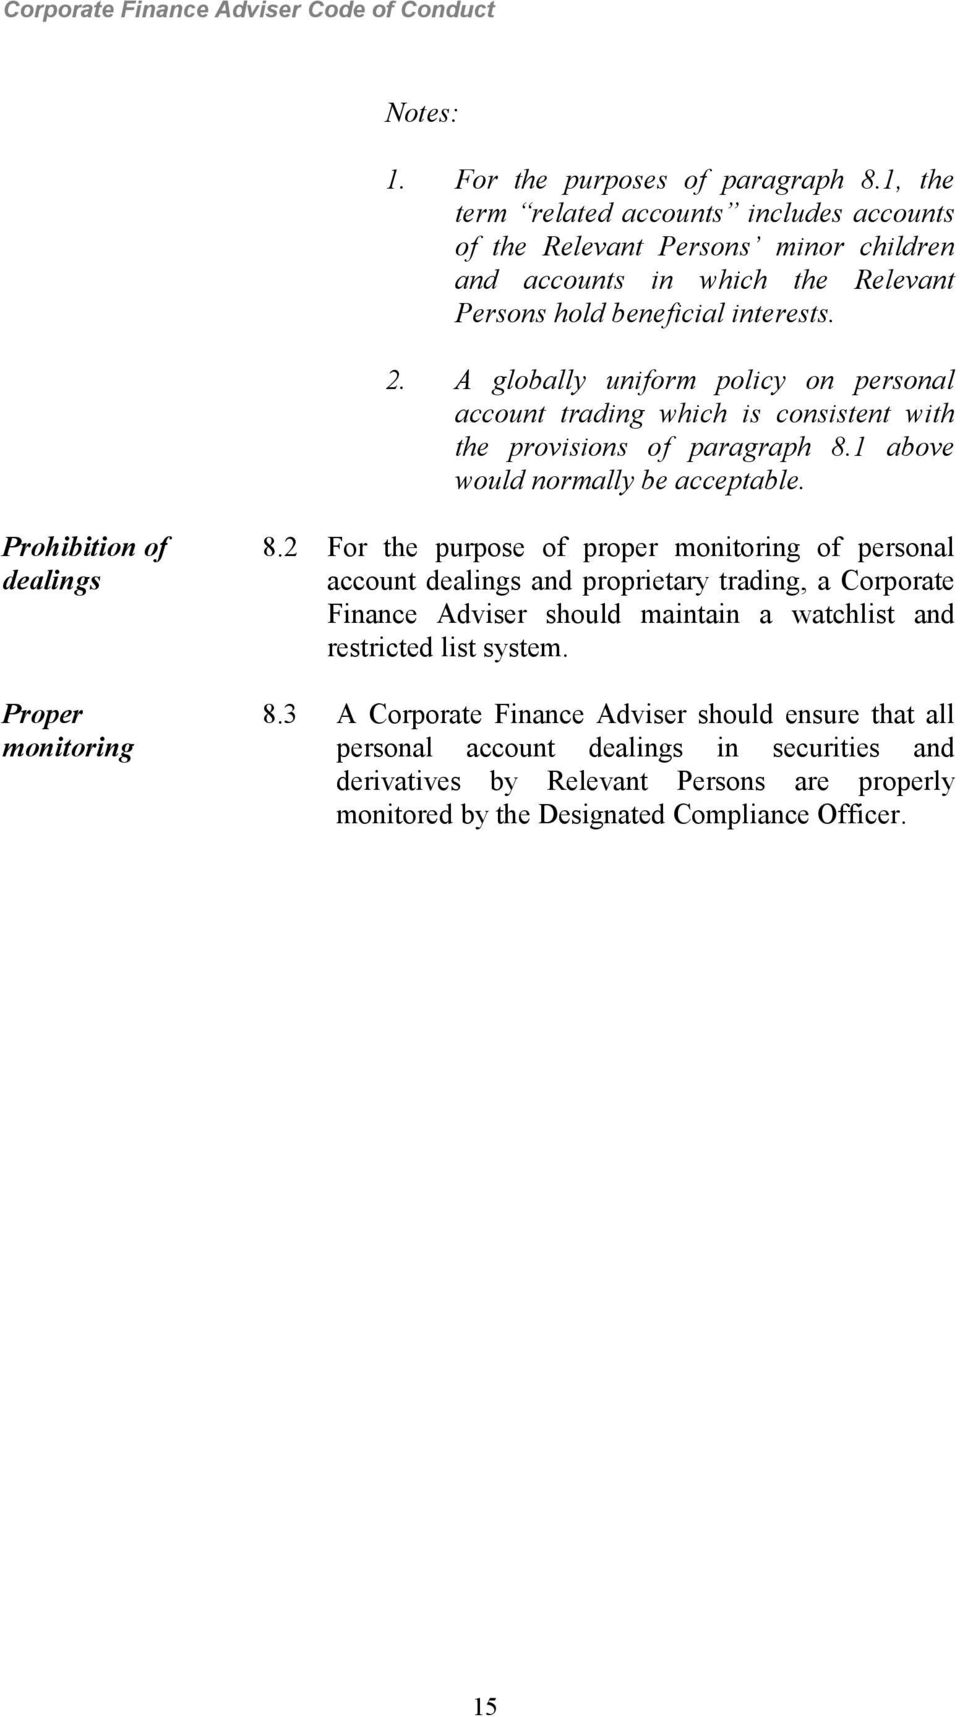 A globally uniform policy on personal account trading which is consistent with the provisions of paragraph 8.1 above would normally be acceptable. Prohibition of dealings Proper monitoring 8.